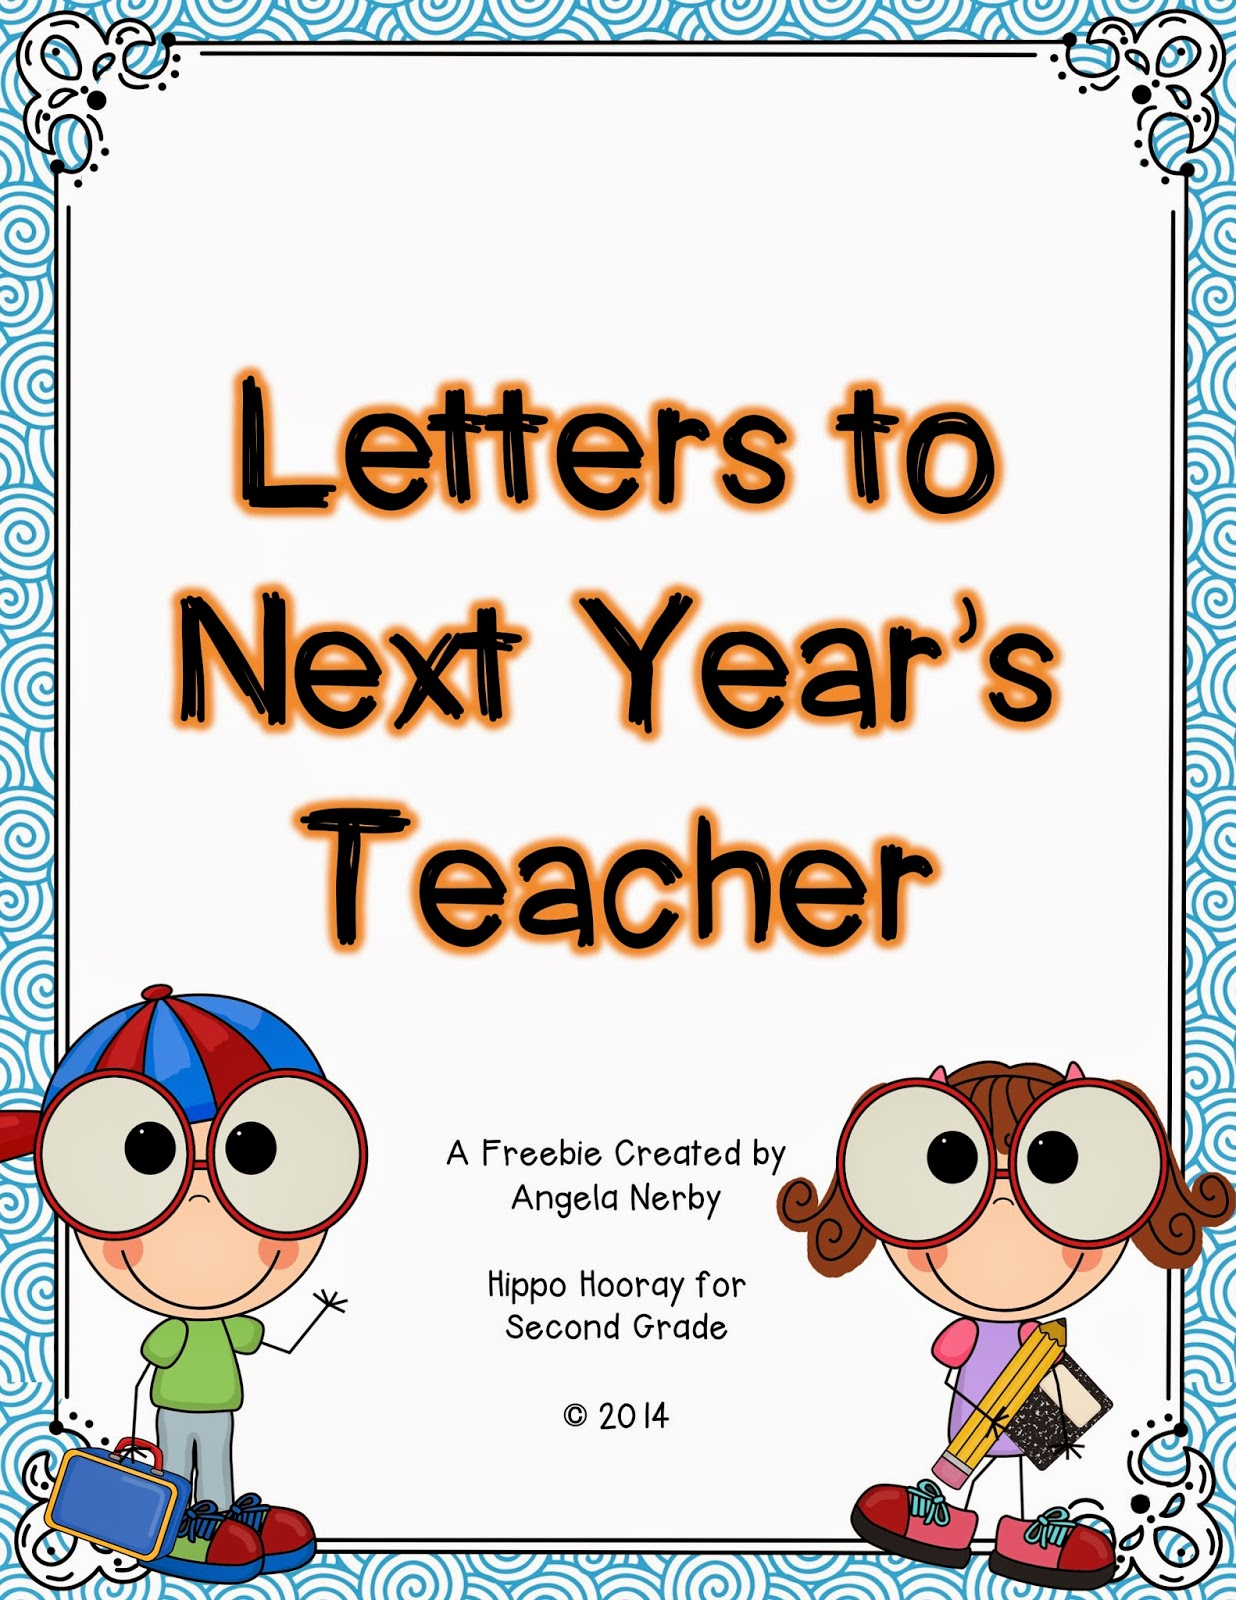 Keep calm letters to next years teacher hippo hooray for second i uploaded my letter template into google drive if you want a copy for yourself click on either image below spiritdancerdesigns Image collections